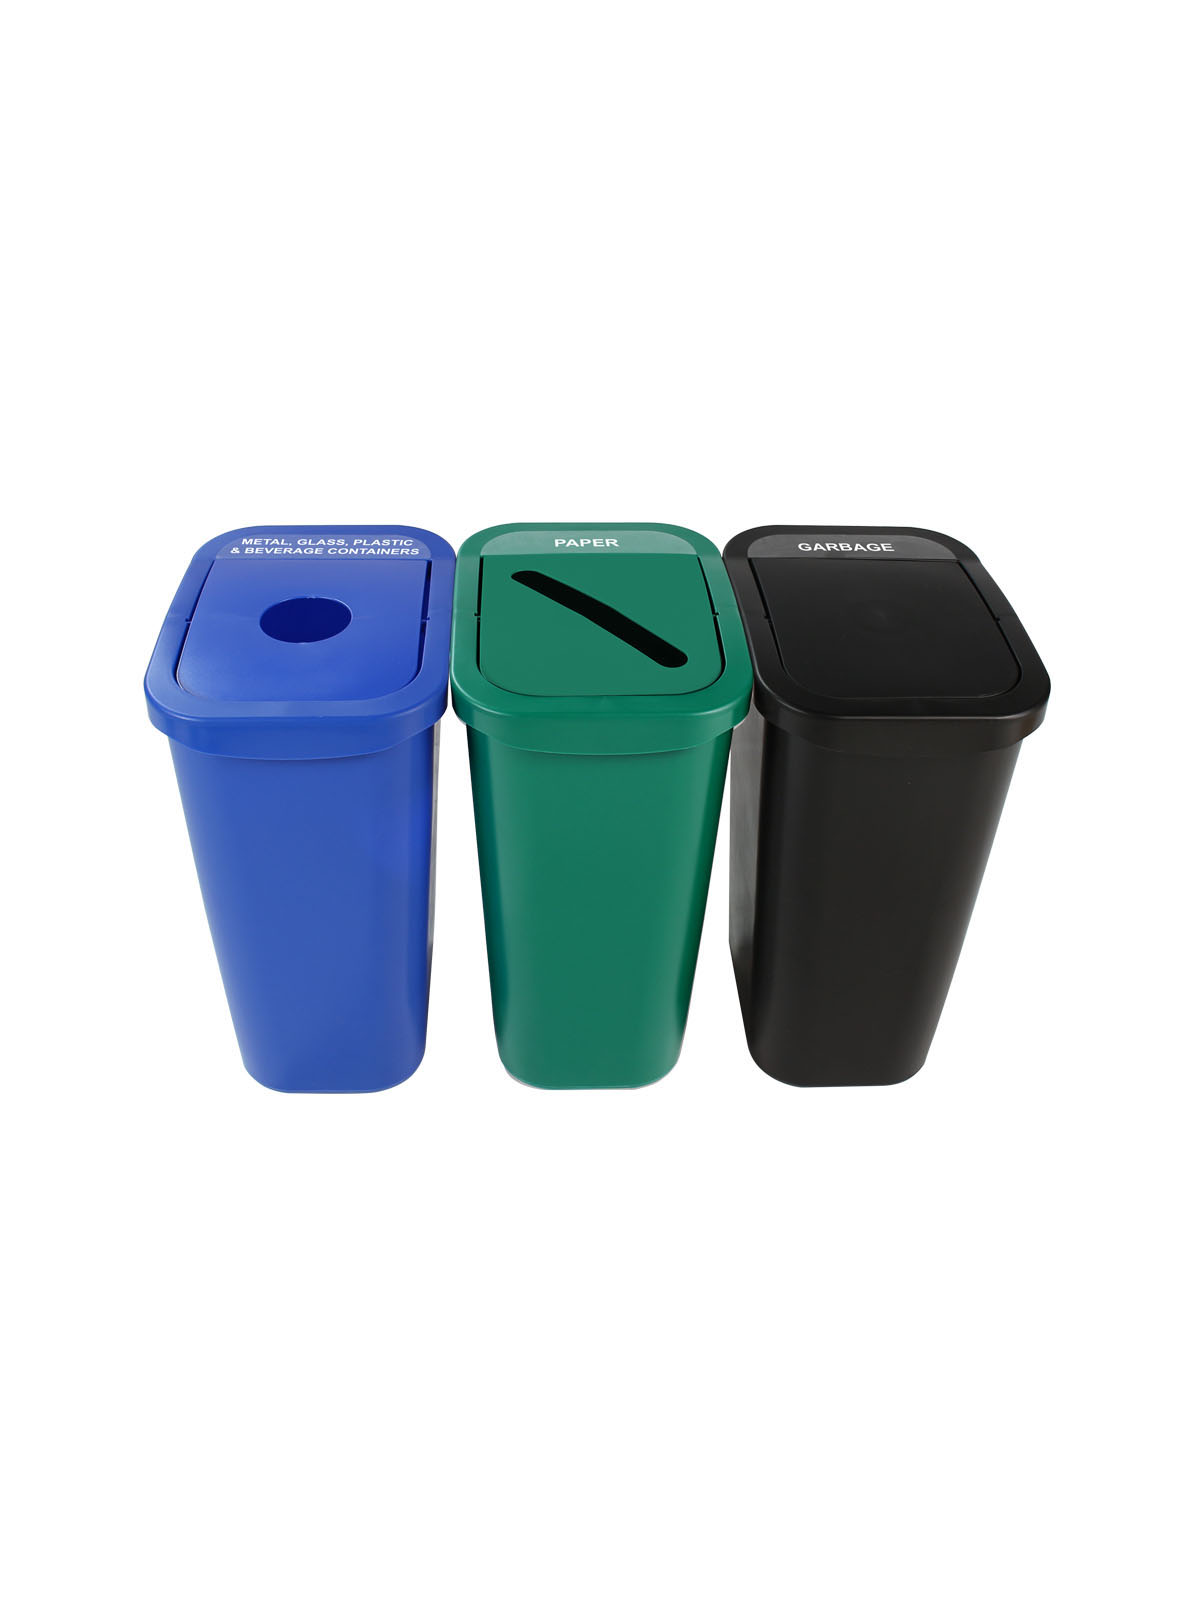 BILLI BOX - Triple - Nyc Compliant - Metal, Glass, Plastic & Beverage Containers-Paper-Garbage - Circle-Slot-Swing - Blue-Green-Black